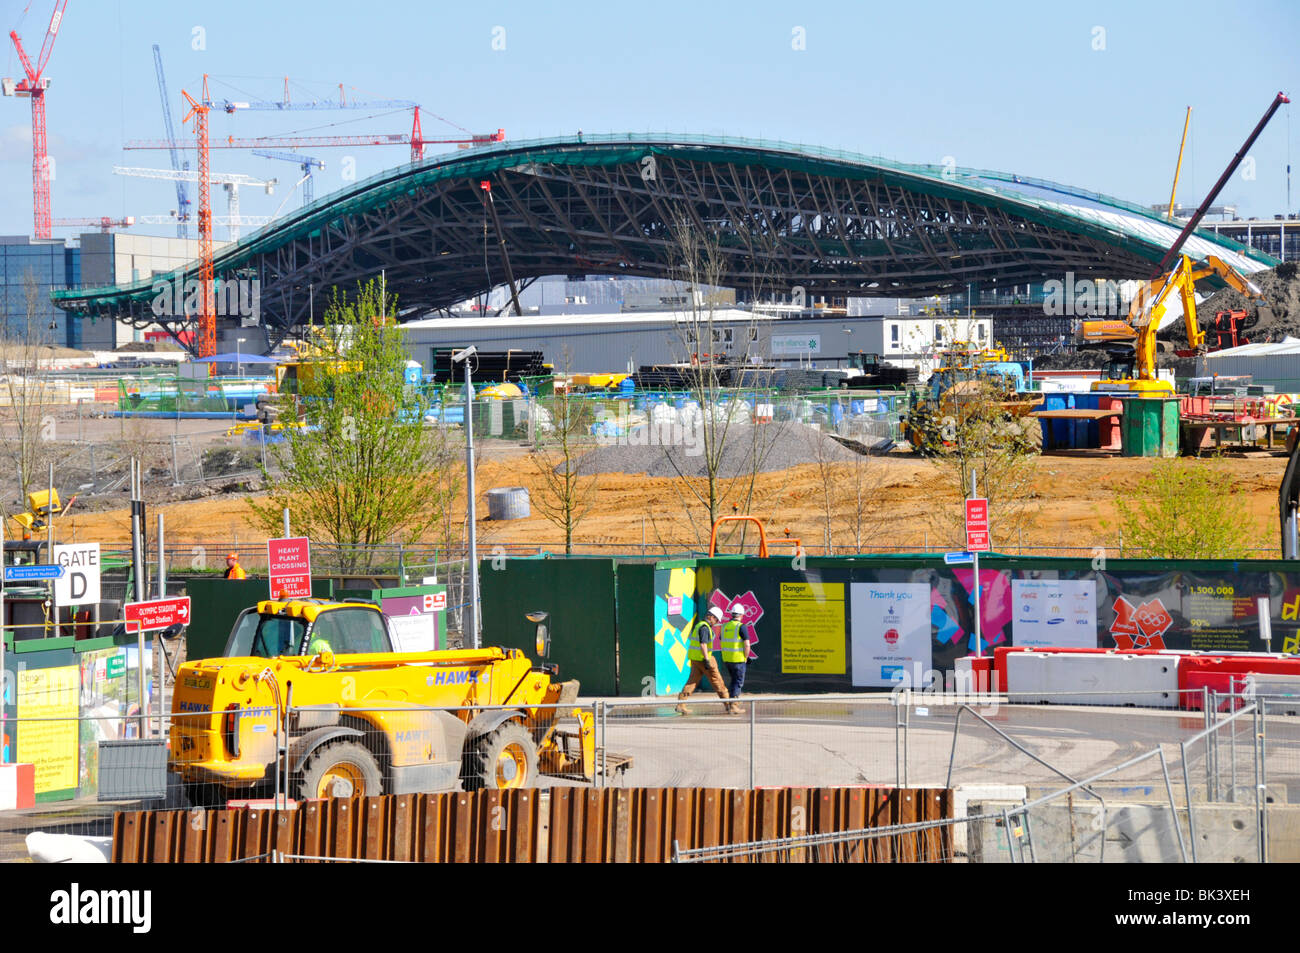 2012 london olympic games construction essay The olympic games are an international sports competition that happens every four years many countries join in the olympic games turkey won 5 medals at the 2012 london olympic.